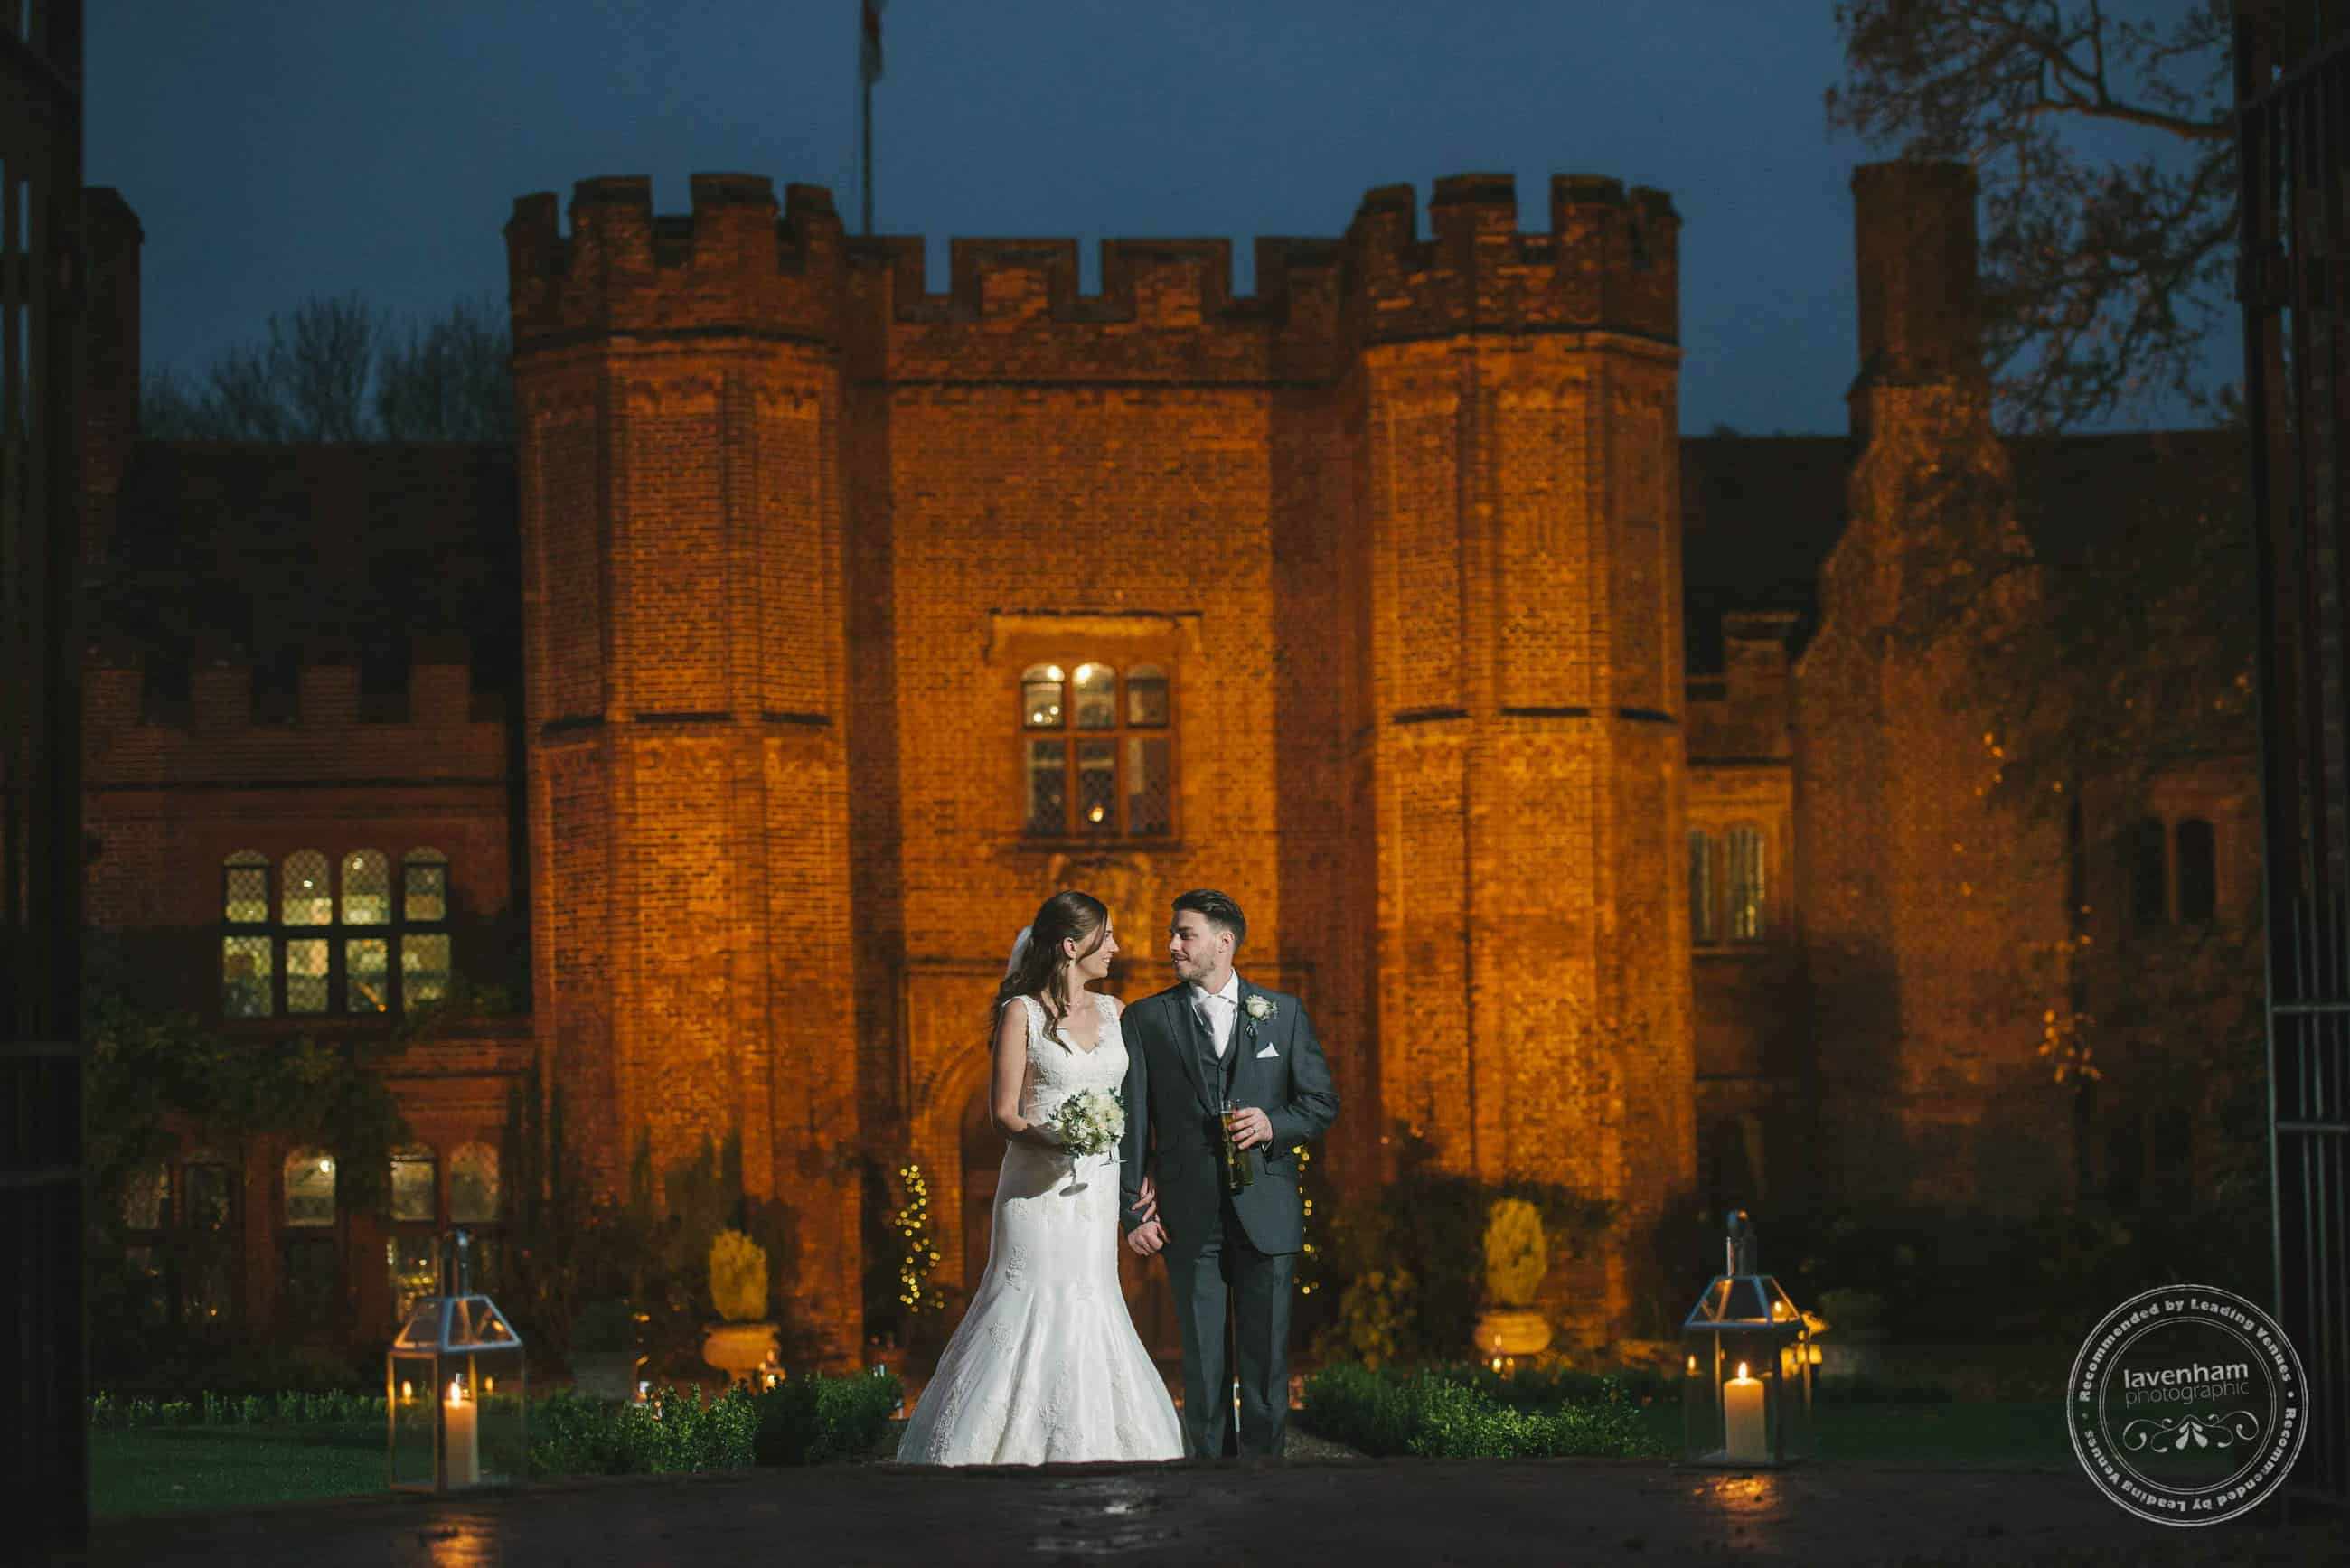 A night time wedding photograph, the bride and groom in front of Leez Priory, lit by off-camera flash